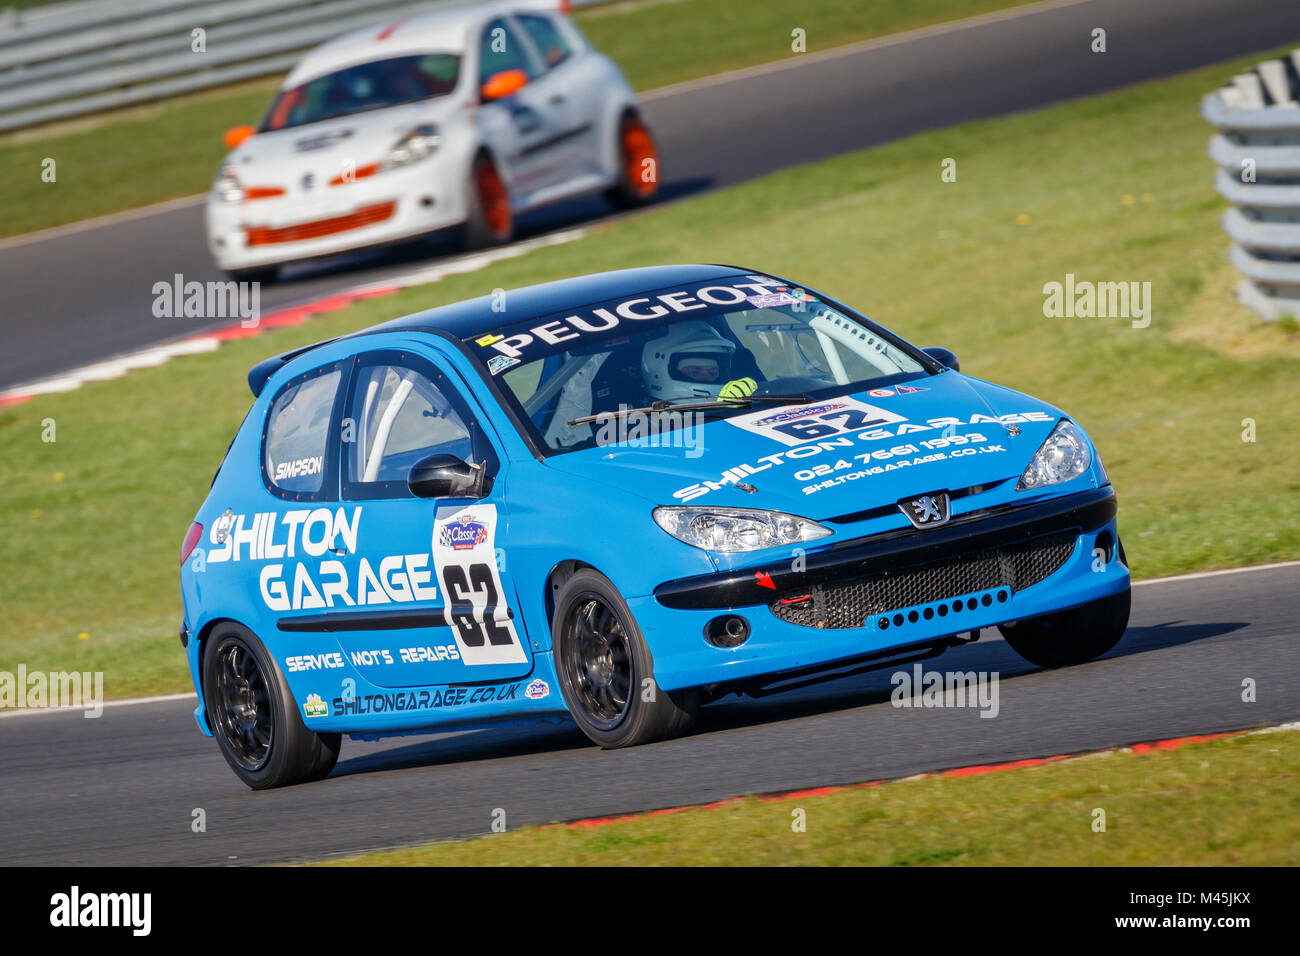 2003 Peugeot 206 Rc Class A With Driver Colin Simpson At The Cscc Stock Photo Alamy